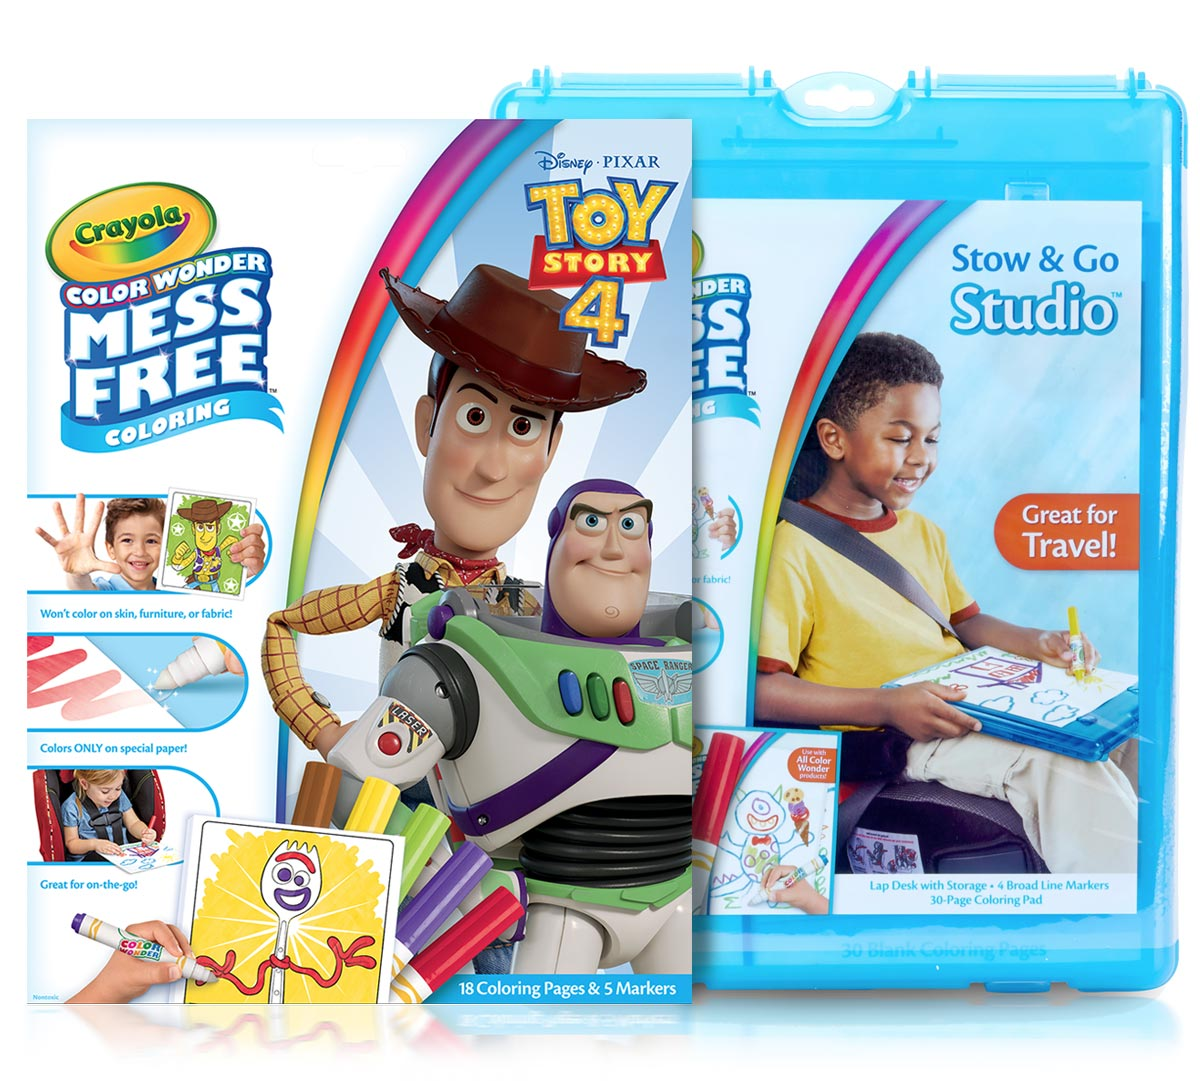 Color Wonder Mess Free Toy Story 4 Stow Go Crayola